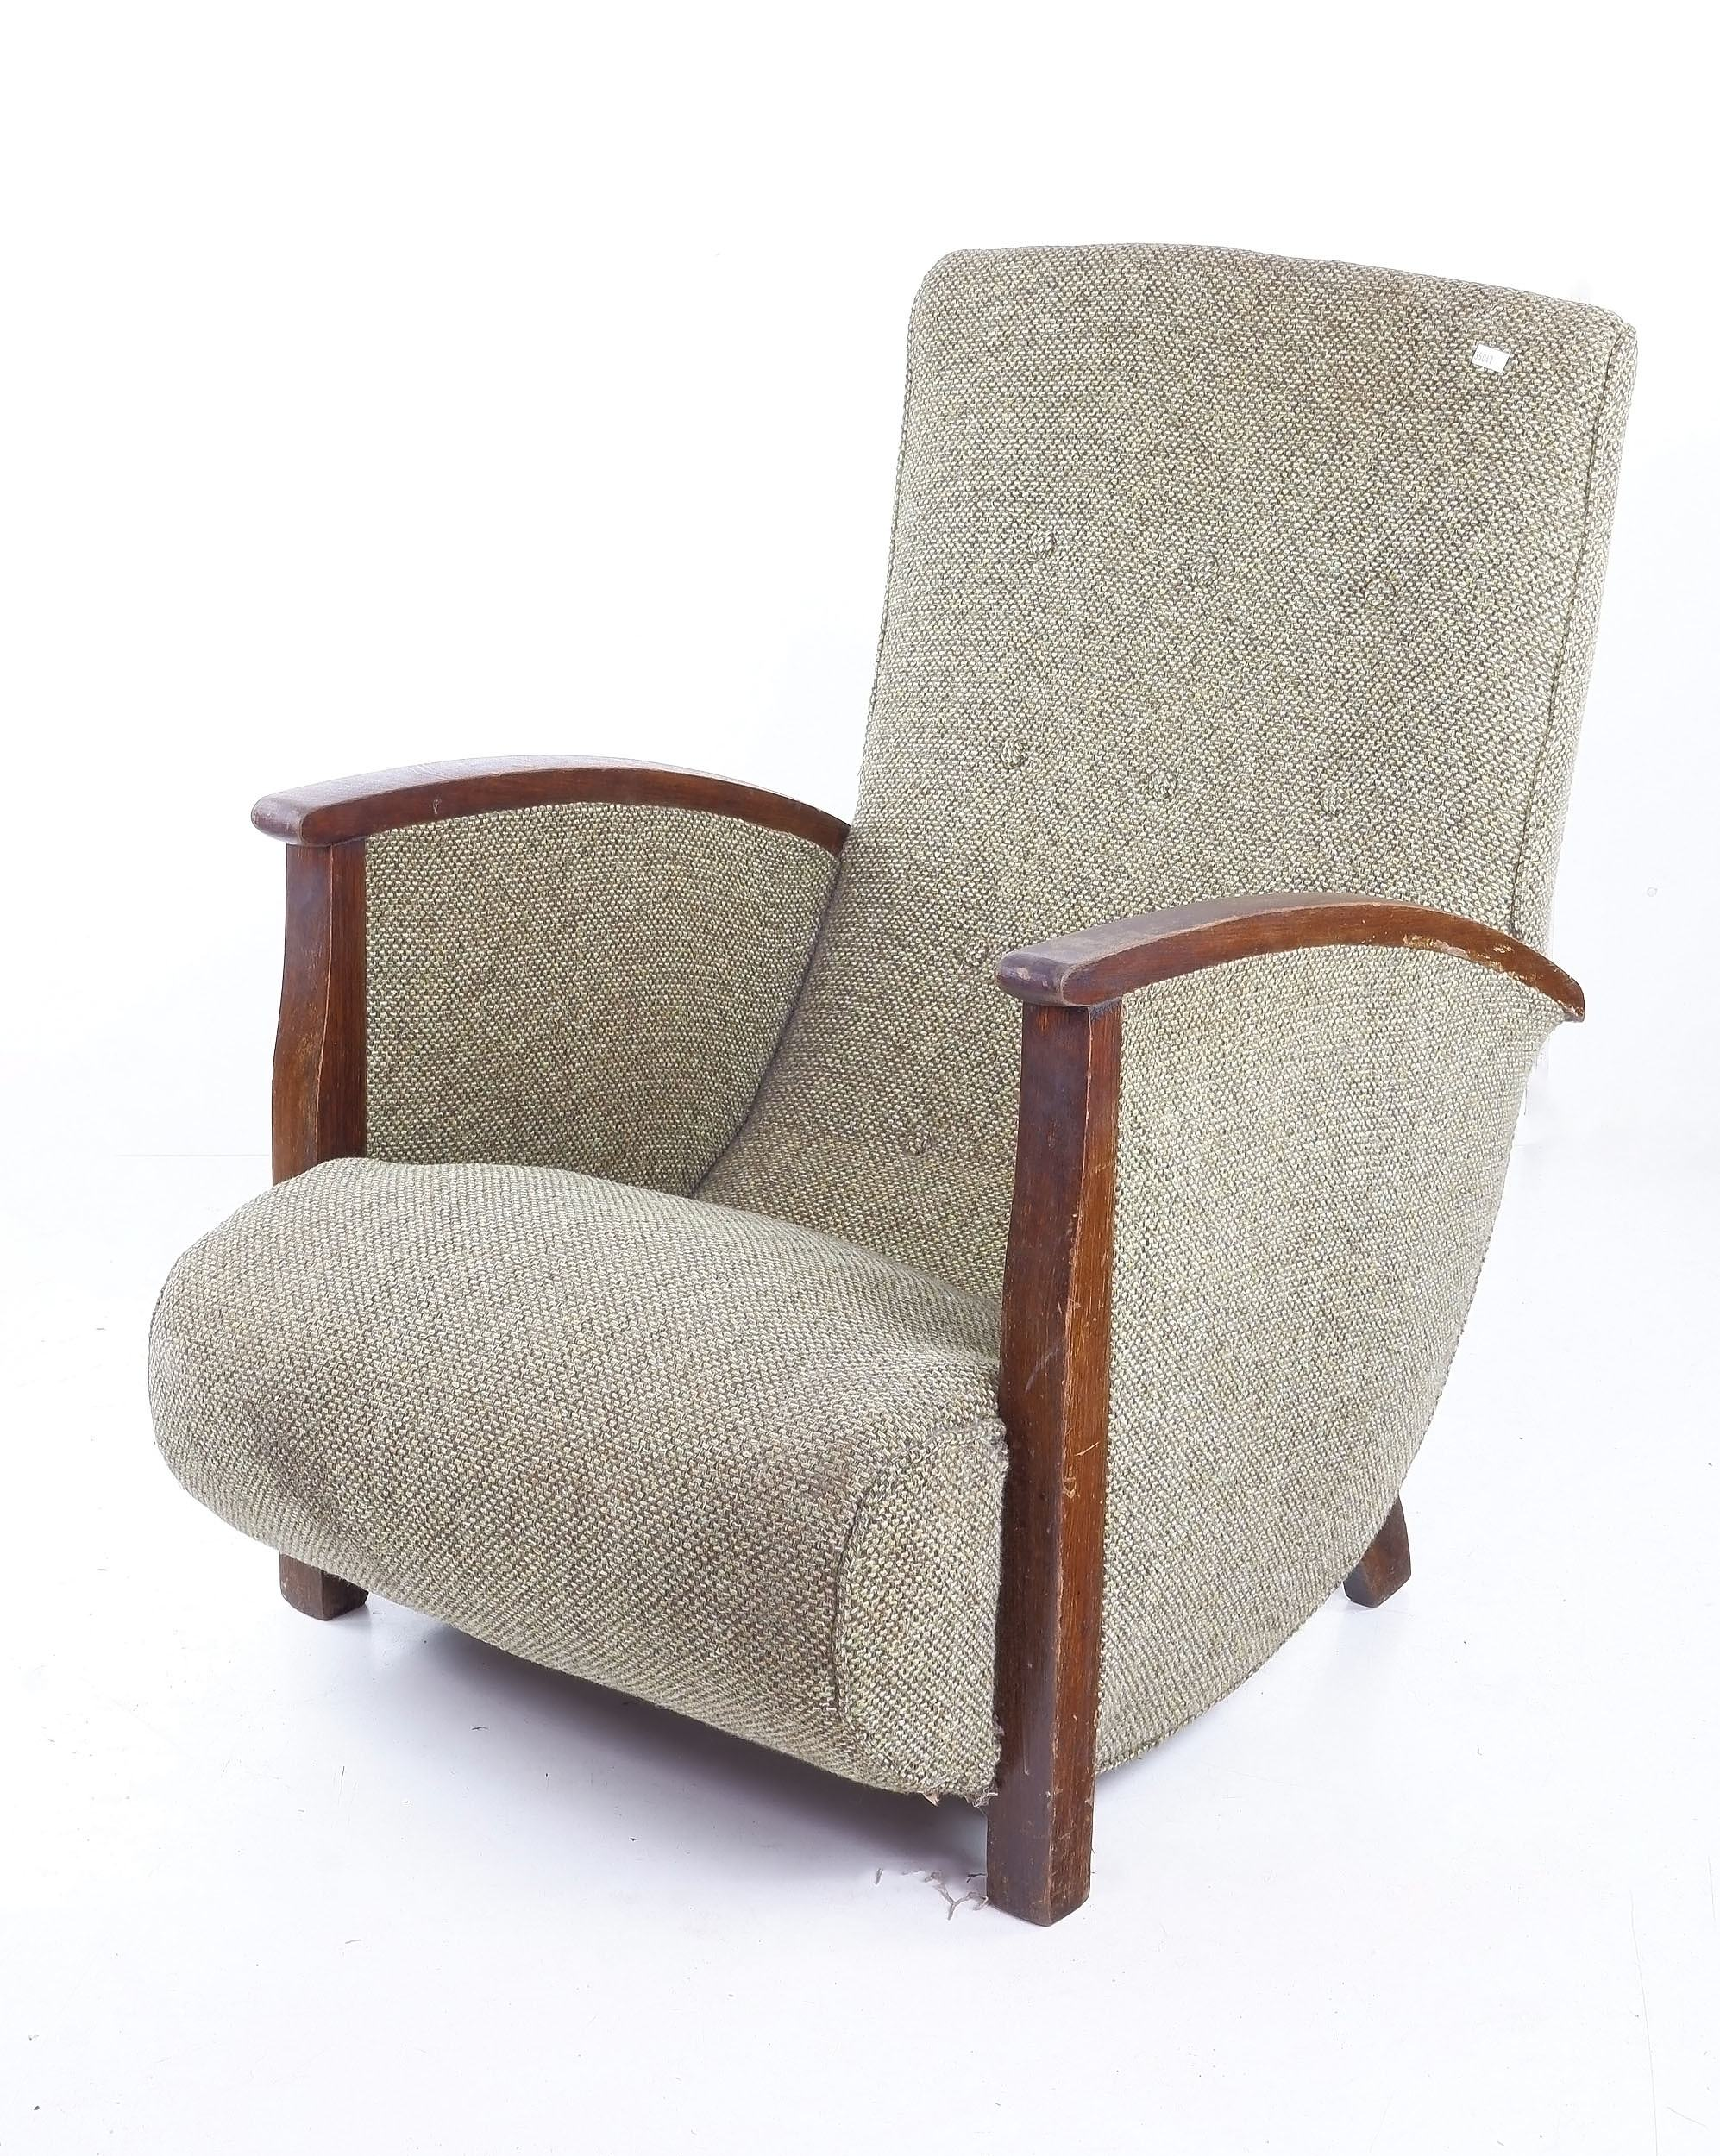 'Vintage Sleepy Hollow Buttoned Fabric Upholstered Armchair'